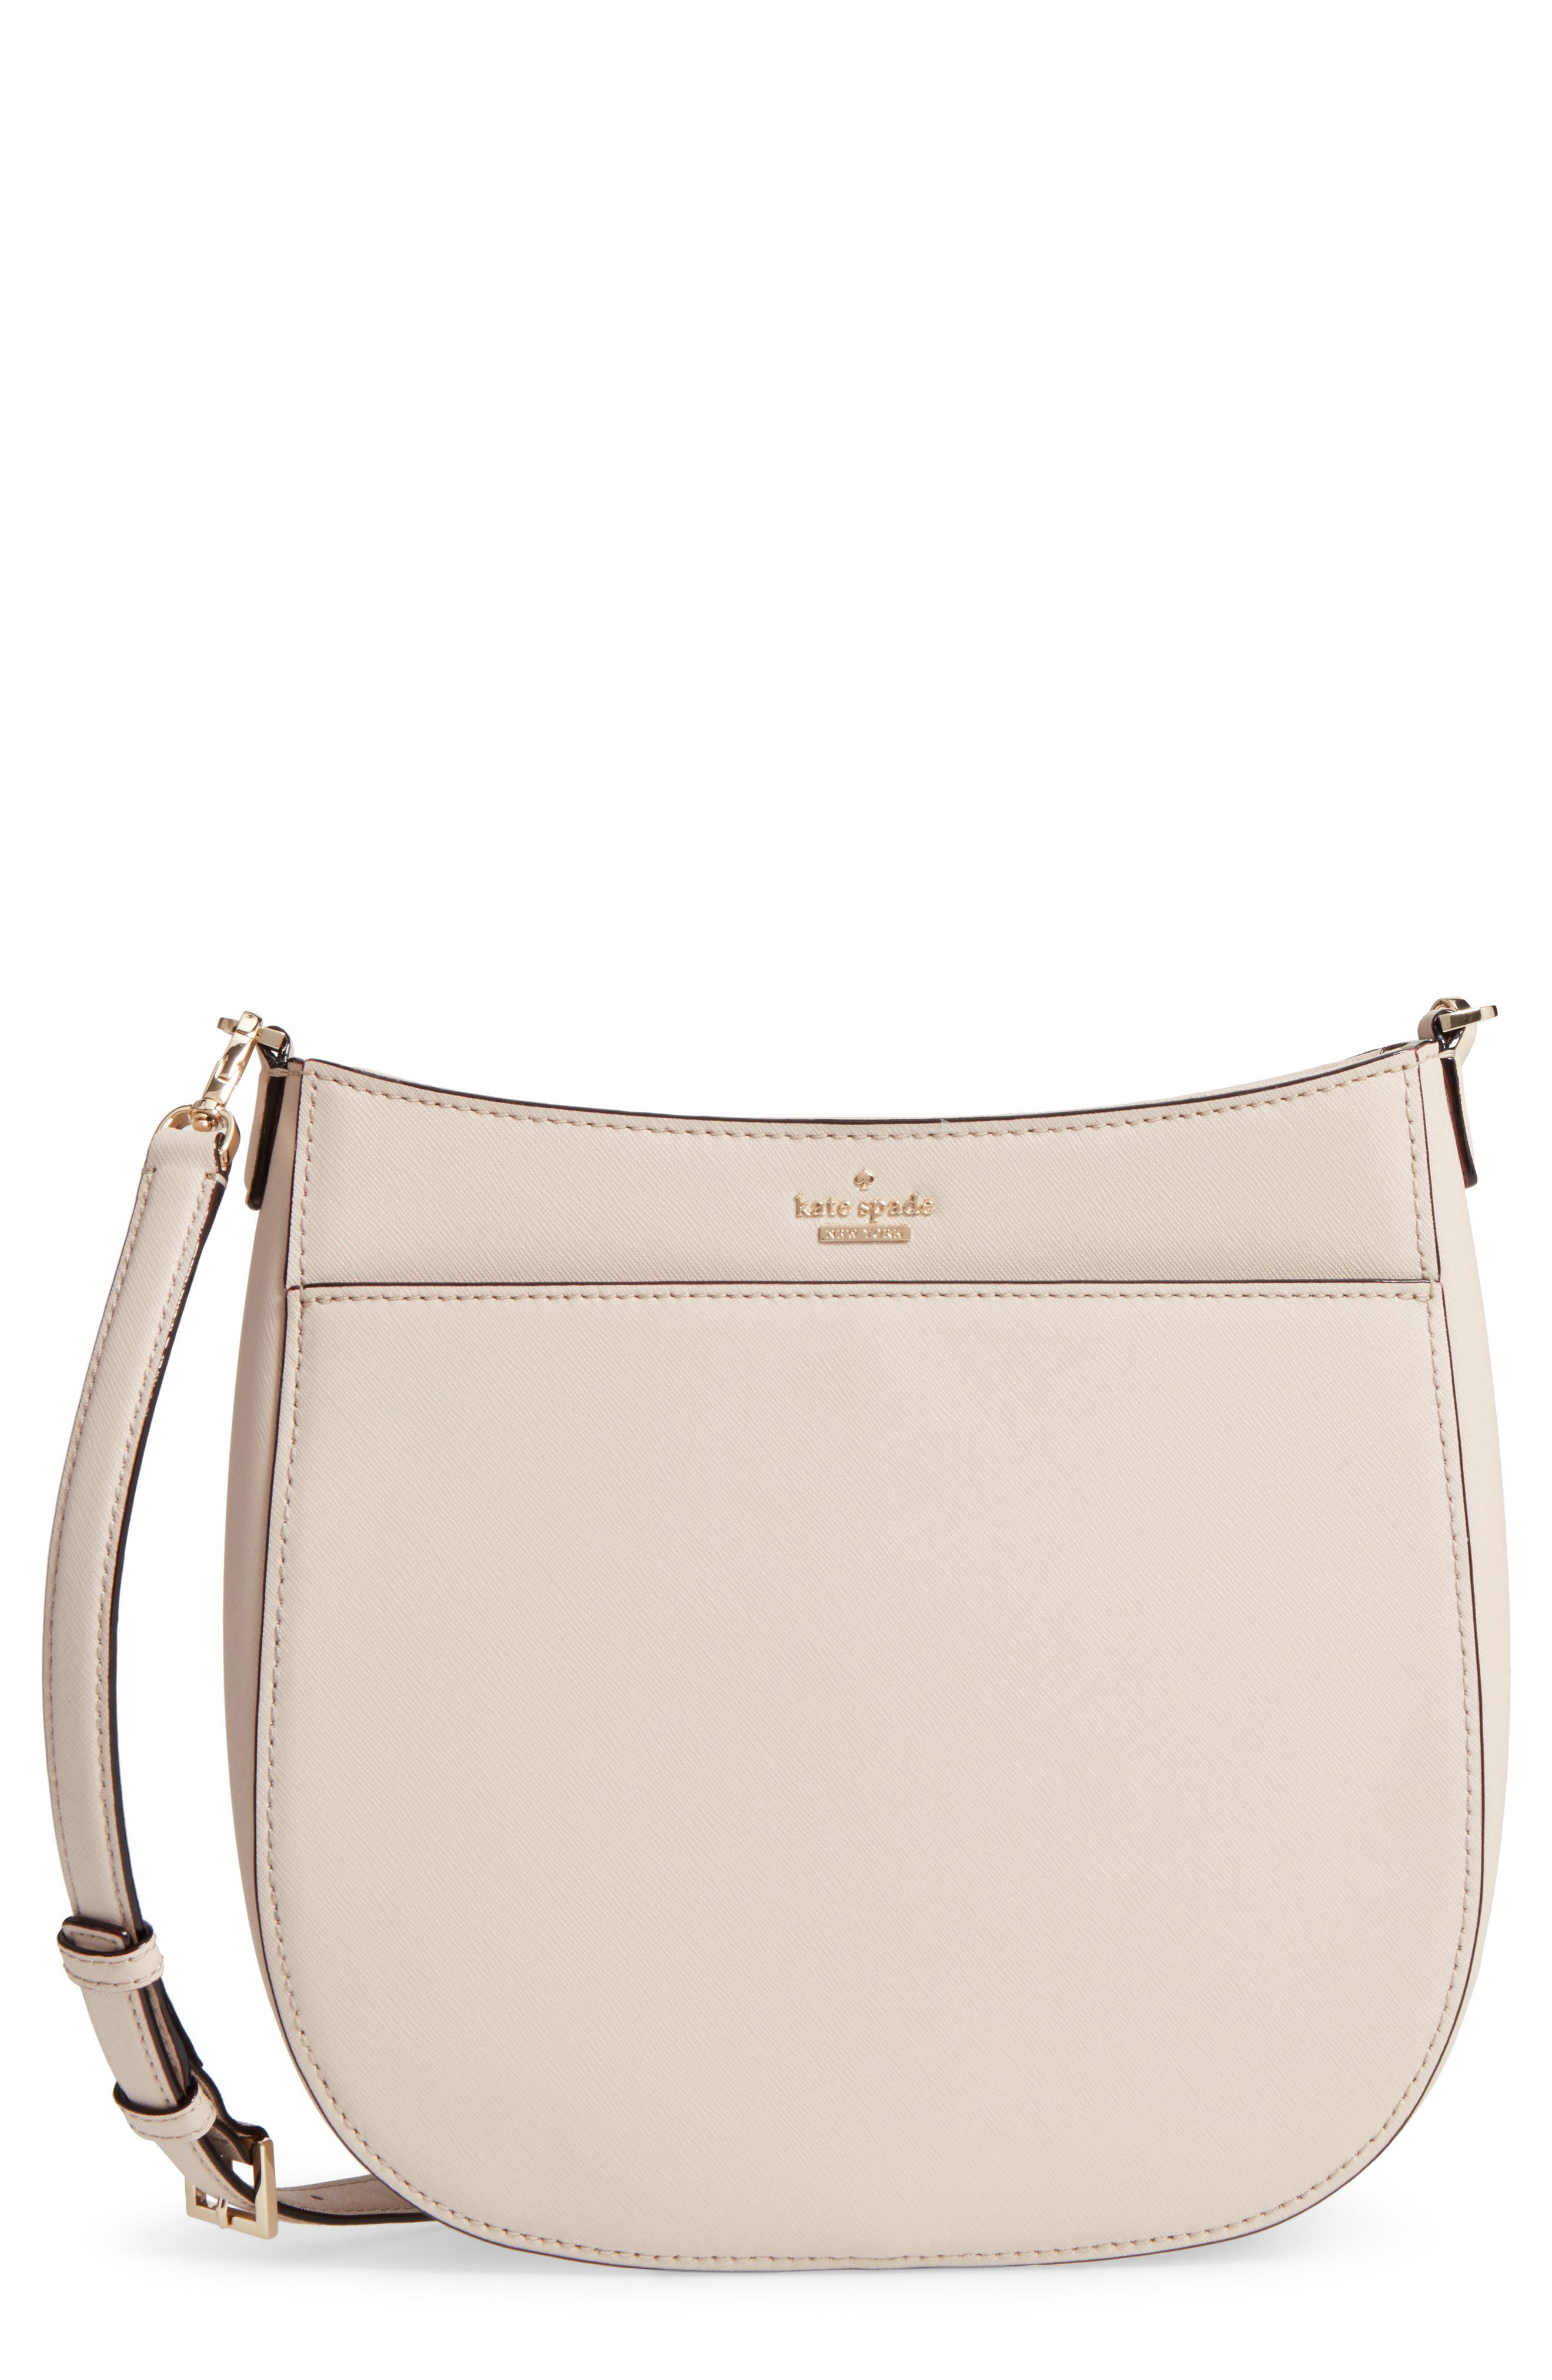 kate spade new york cameron street - robin leather crossbody bag (Nordstrom Exclusive)